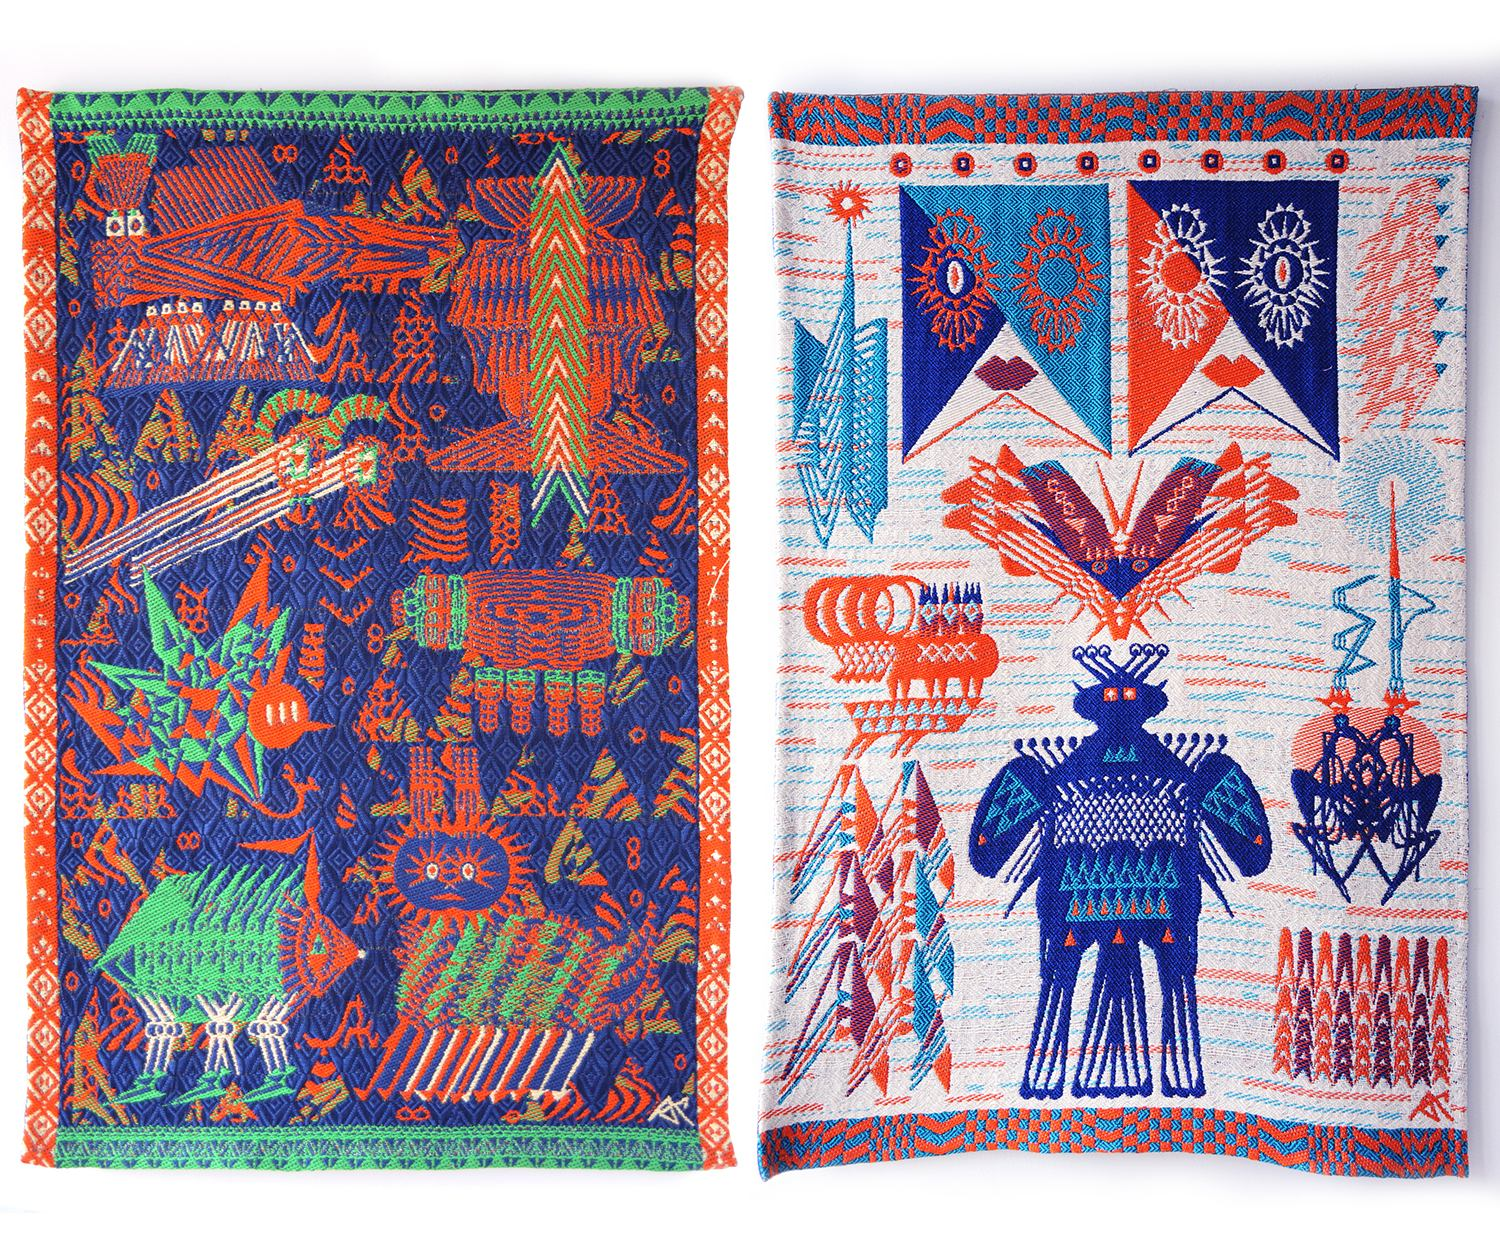 artistic carpets with illustrations, Sun and Night Textile by Aya Kawabata